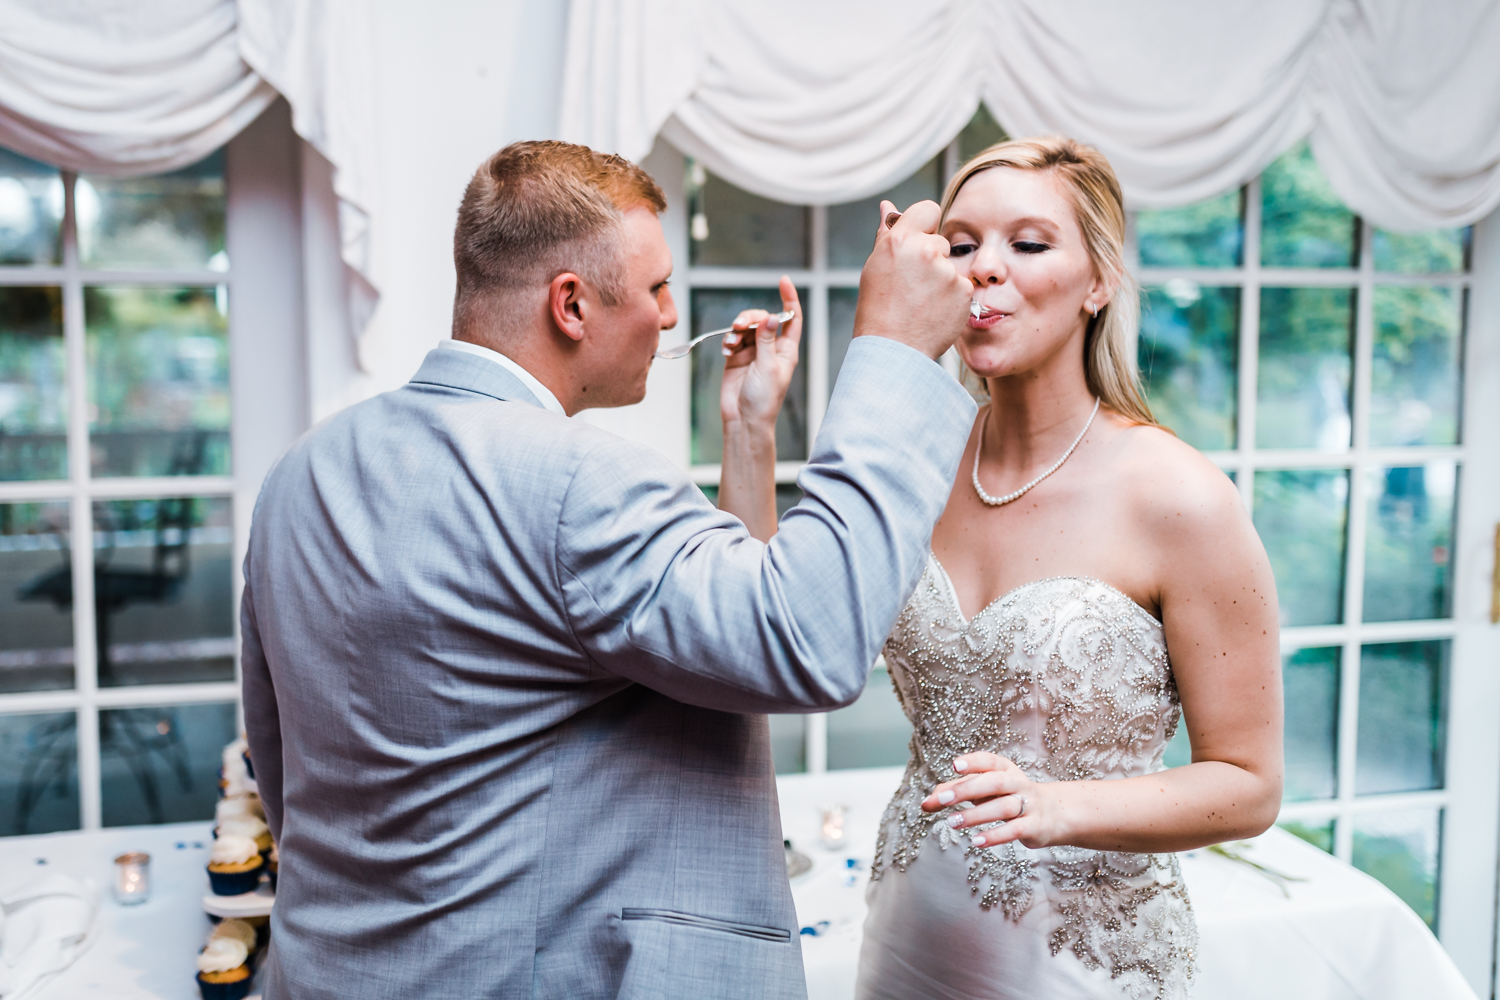 mr and mrs eating their wedding cake - top wedding venues with a garden estate setting in Maryland